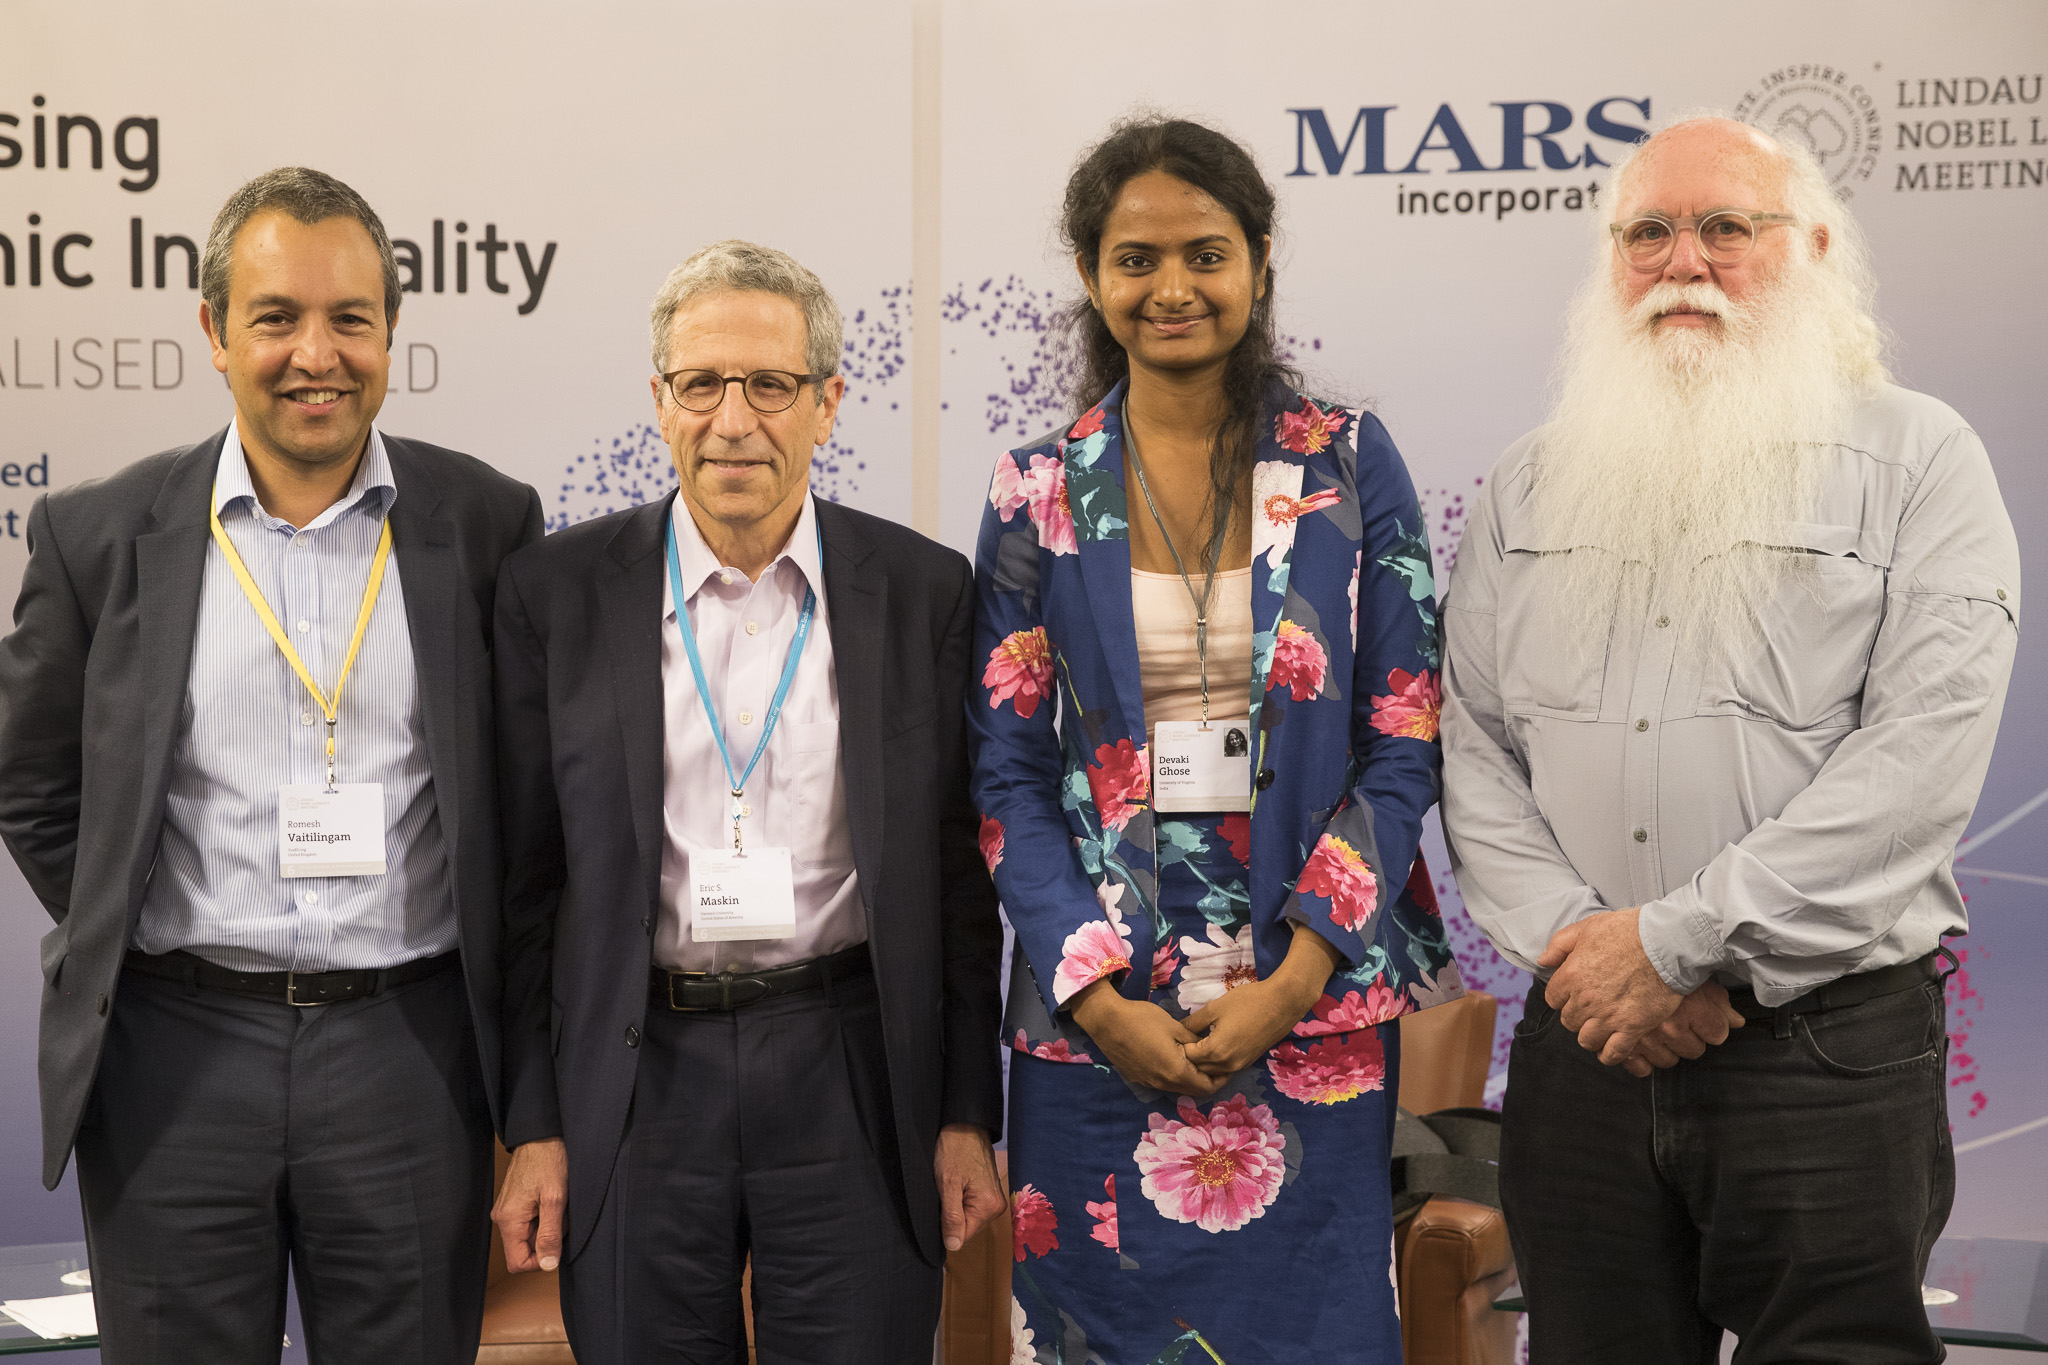 I was discussing economic inequality at the 6th Lindau Meeting on Economic Sciences with economists Romesh Vaitilingam, Eric Maskin (Nobel Laureate) and Devaki Ghose.